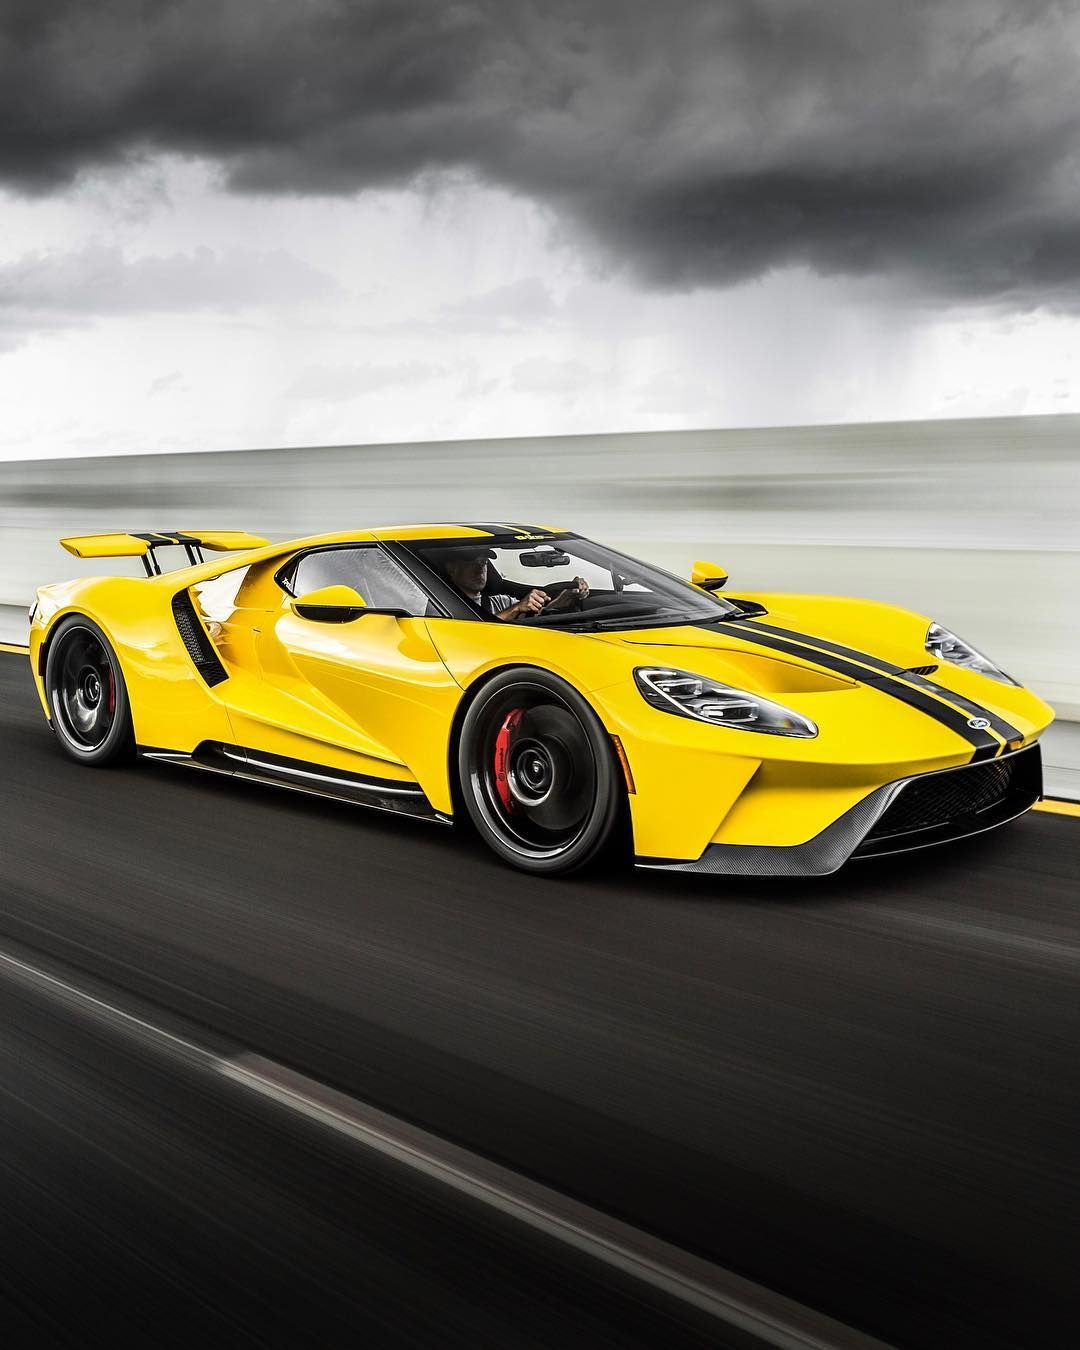 Best Looking Supercar Of 2018 Dragtimescom S Ford Gt Ford Gt Fordgt Ford Gt Super Cars Ford